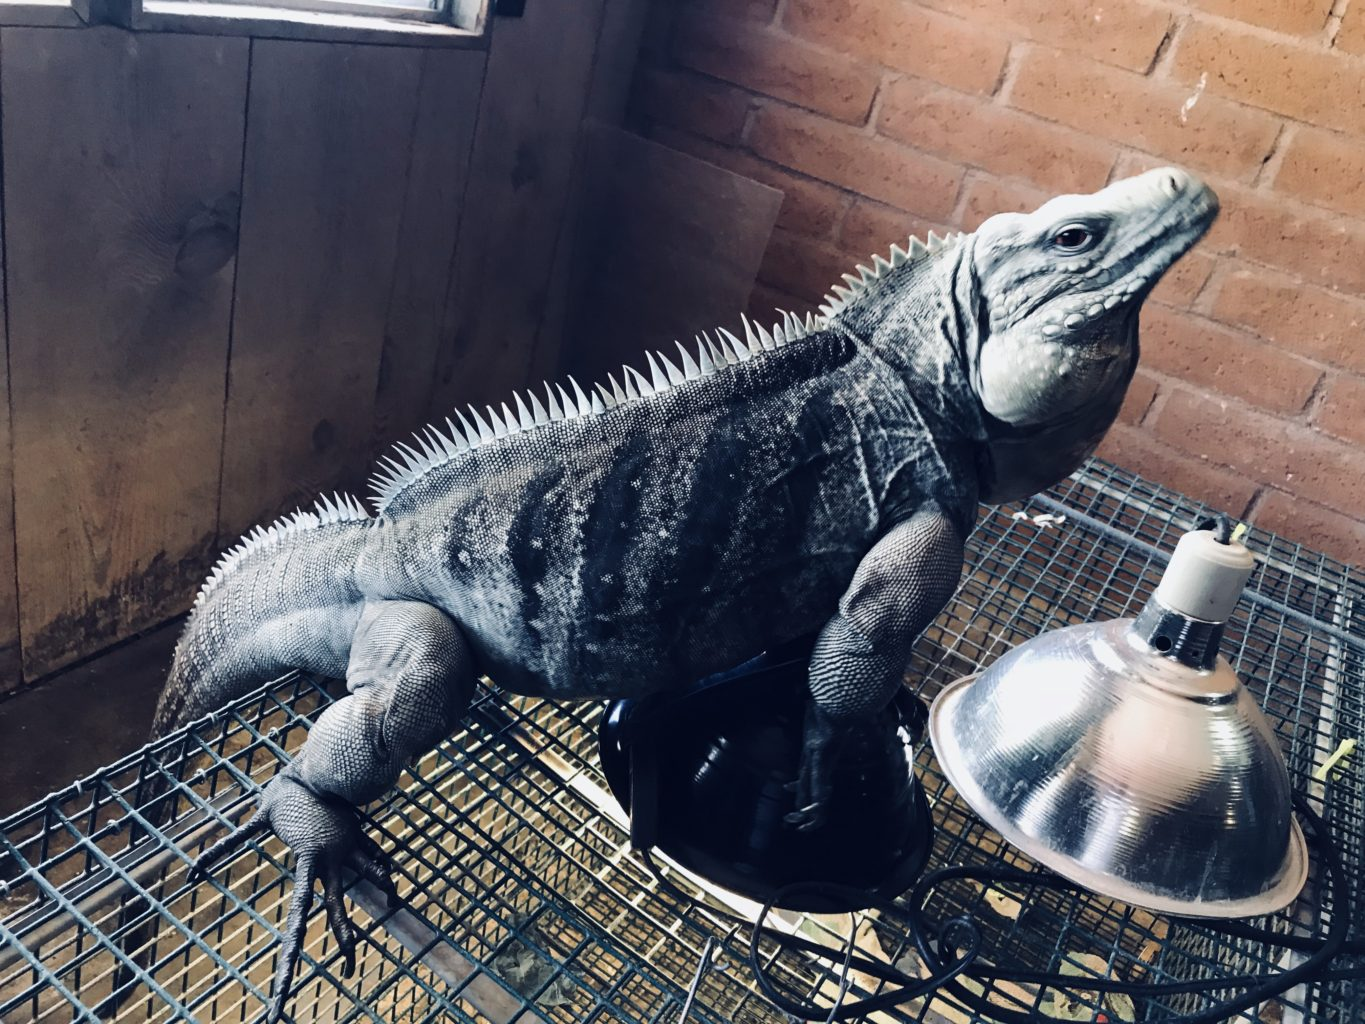 an adult male blue iguana hybrid standing on top of a cage